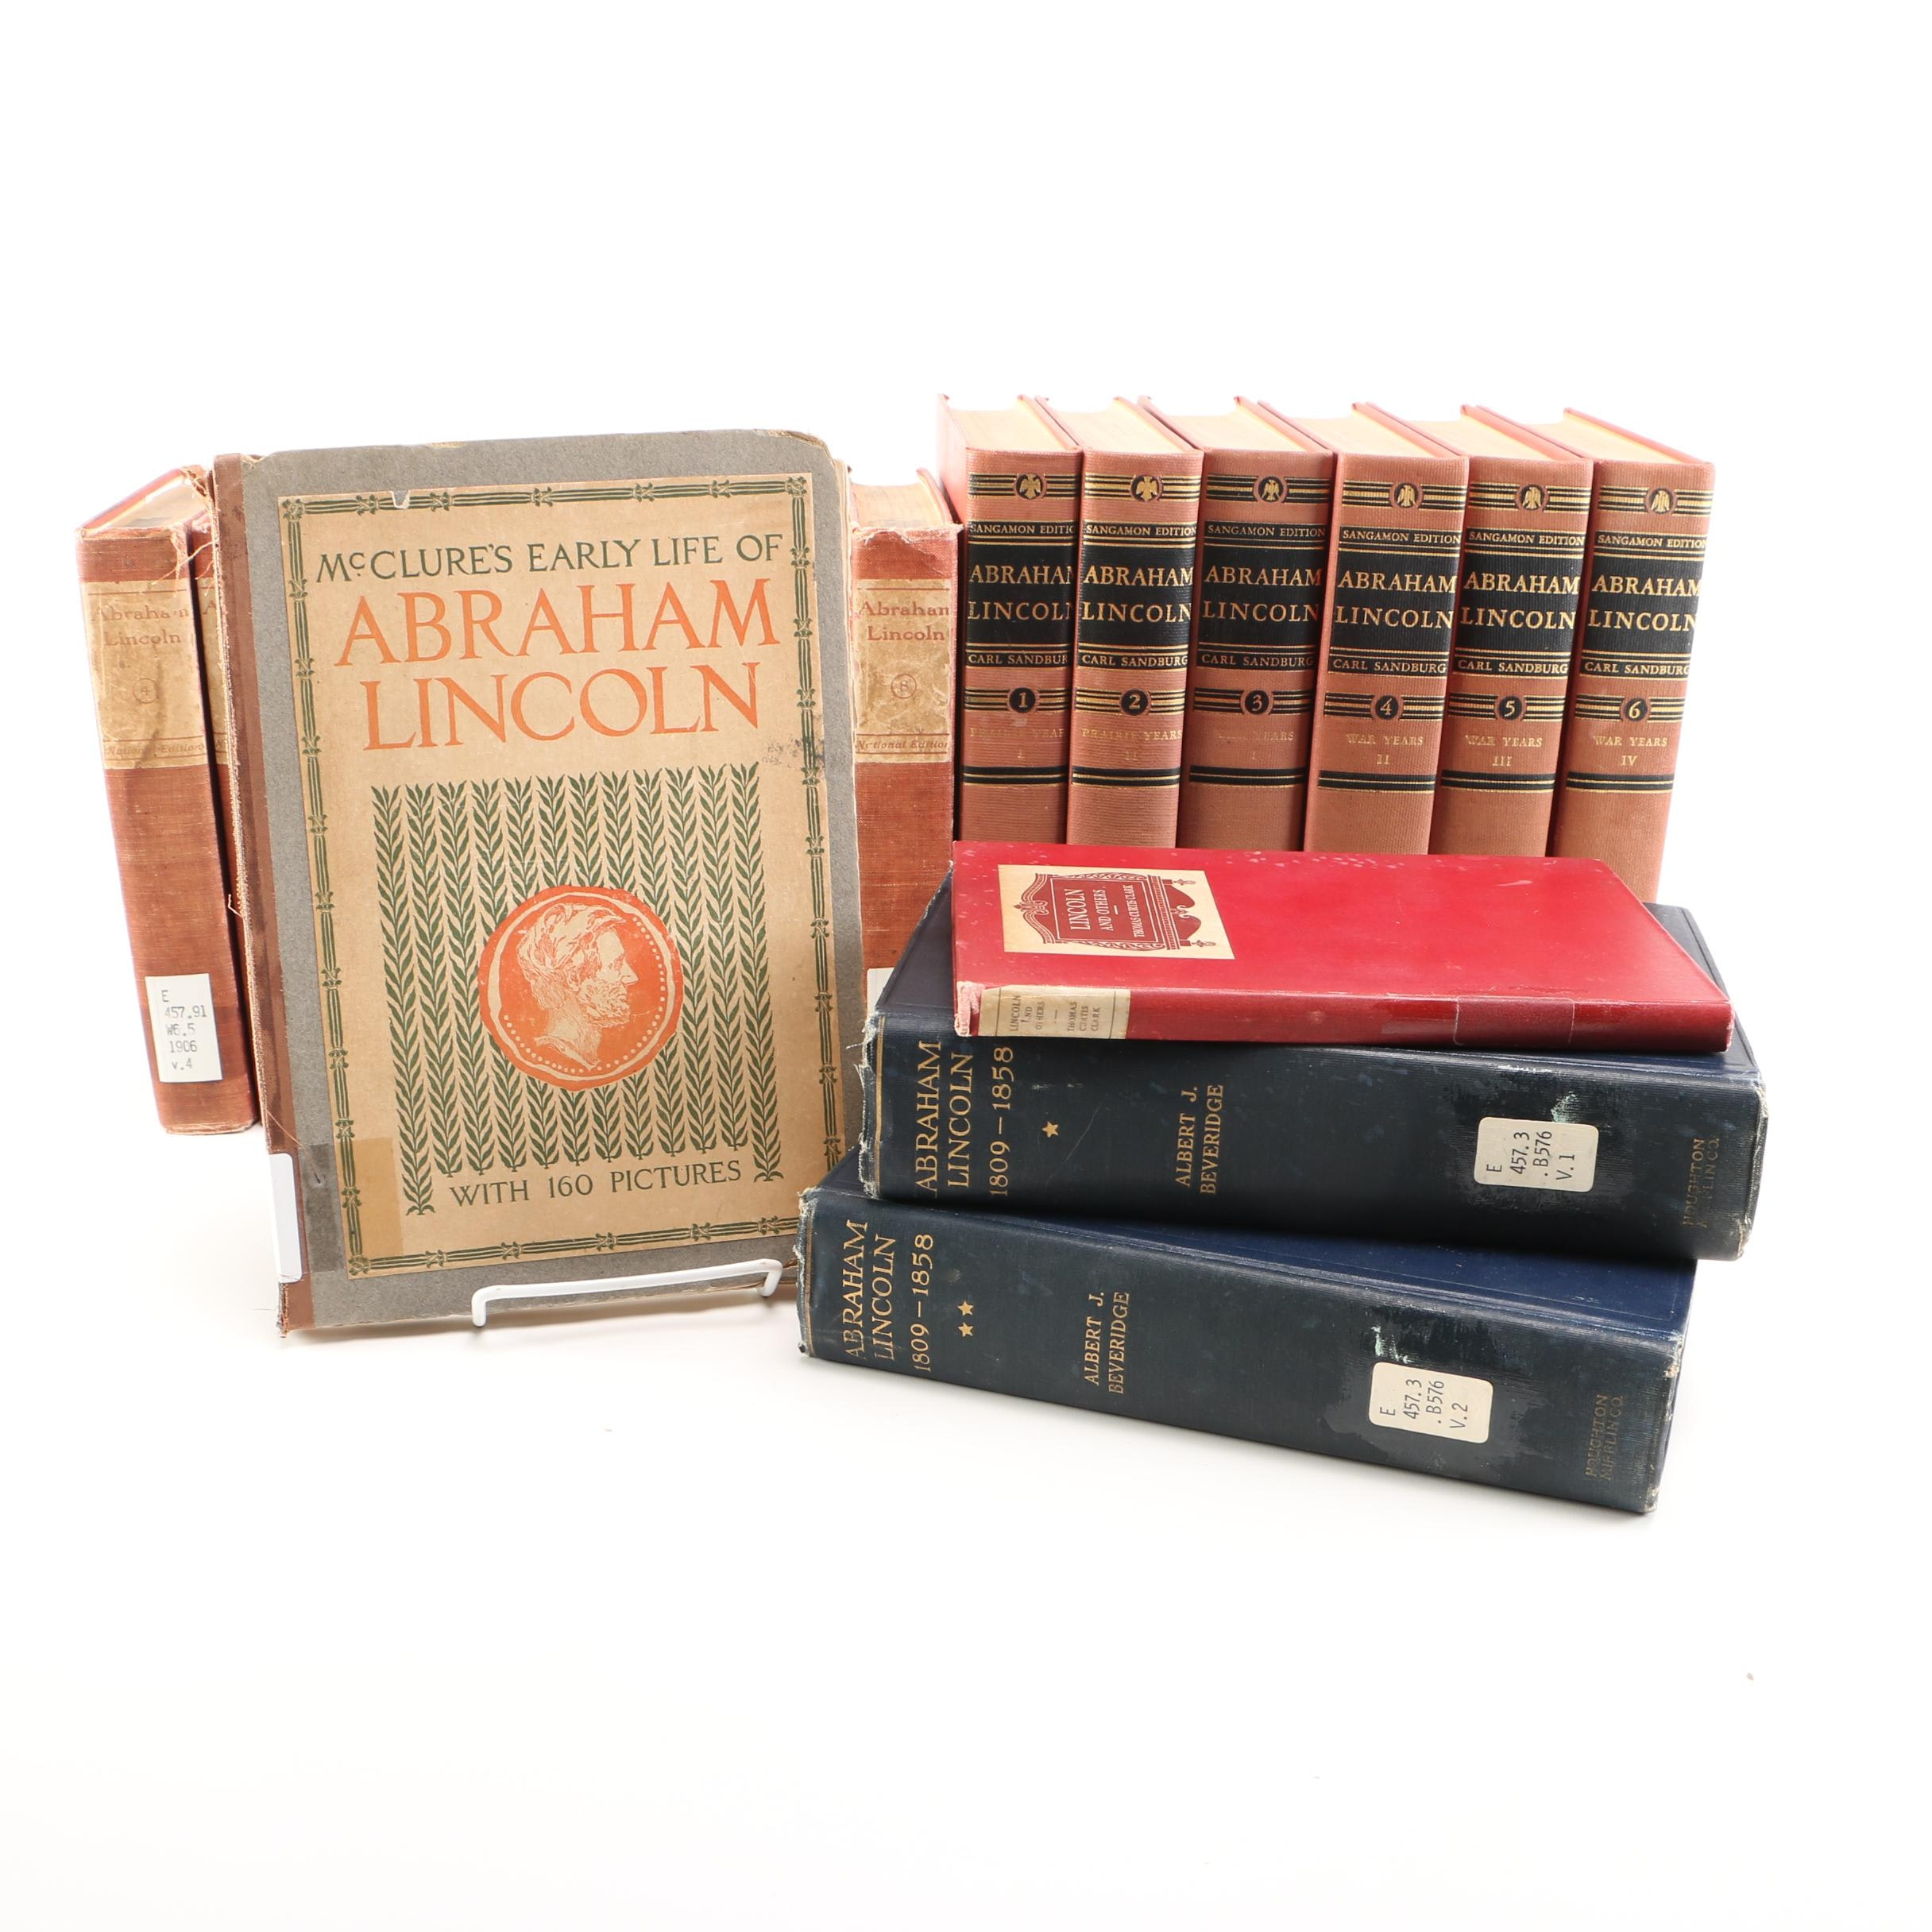 Collection of Antique and Vintage Library Books on Abraham Lincoln